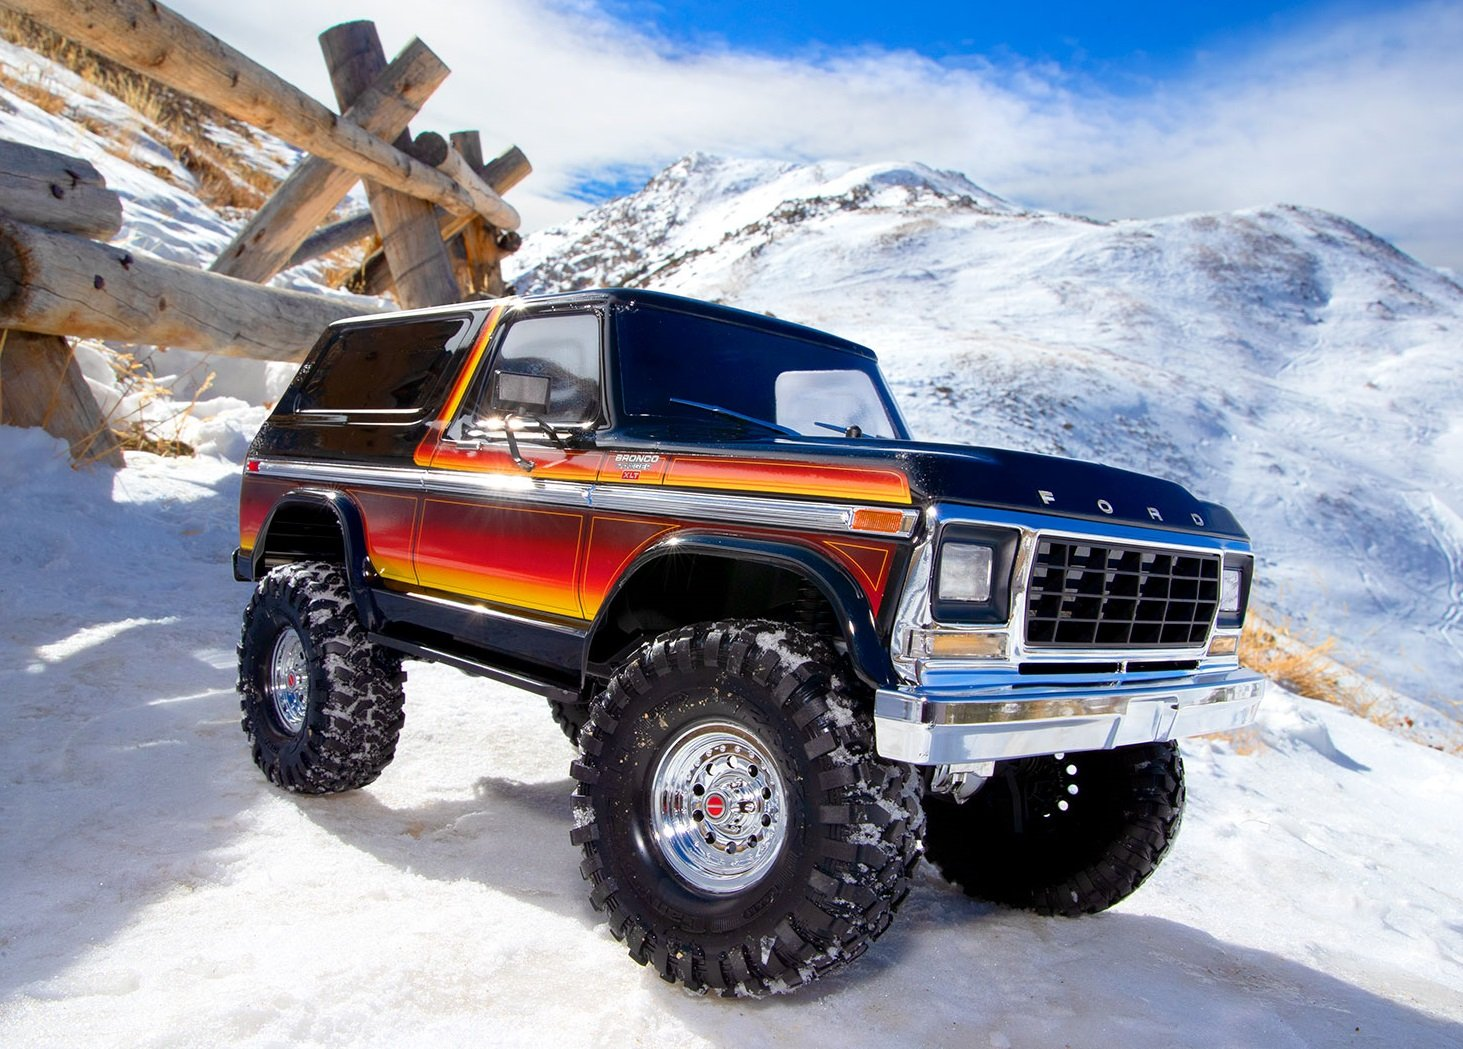 Fandacycle Professional Gear and Apparel in Columbia MO 82046-4-Ford-Bronco-Action-8117